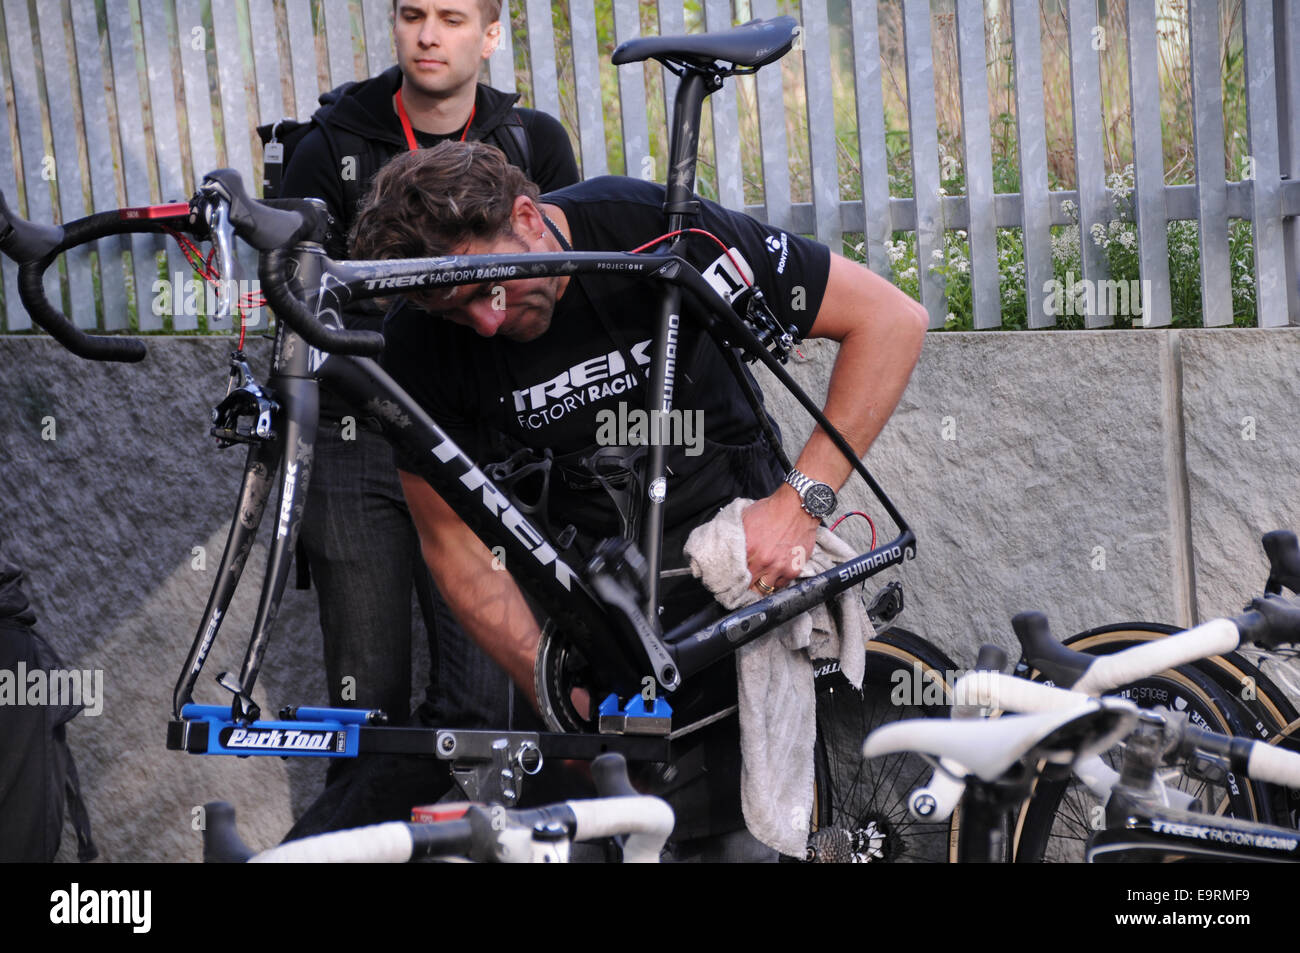 Fabian Cancellaras Bike Get Some Tender Lover And Care From Team